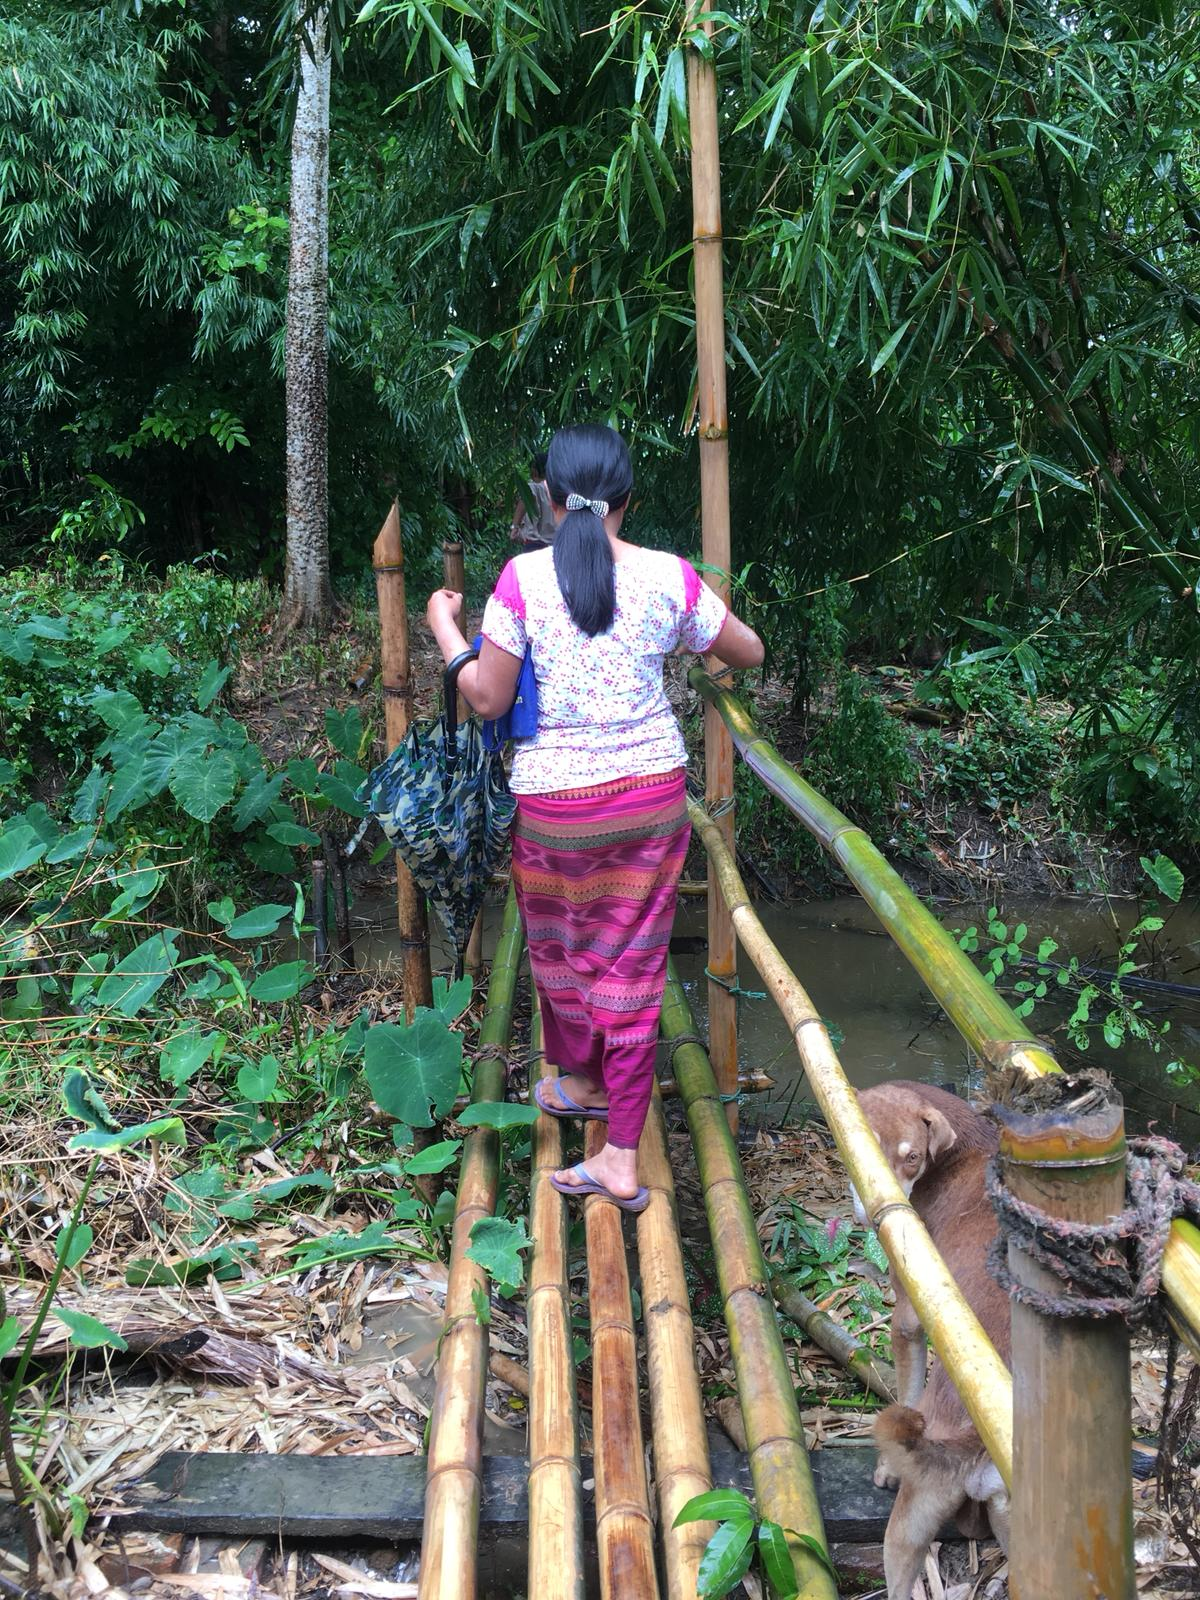 Bamboo grows naturally in many parts of Myanmar and is often used in construction of homes, fences, or even simple bridges like this one.